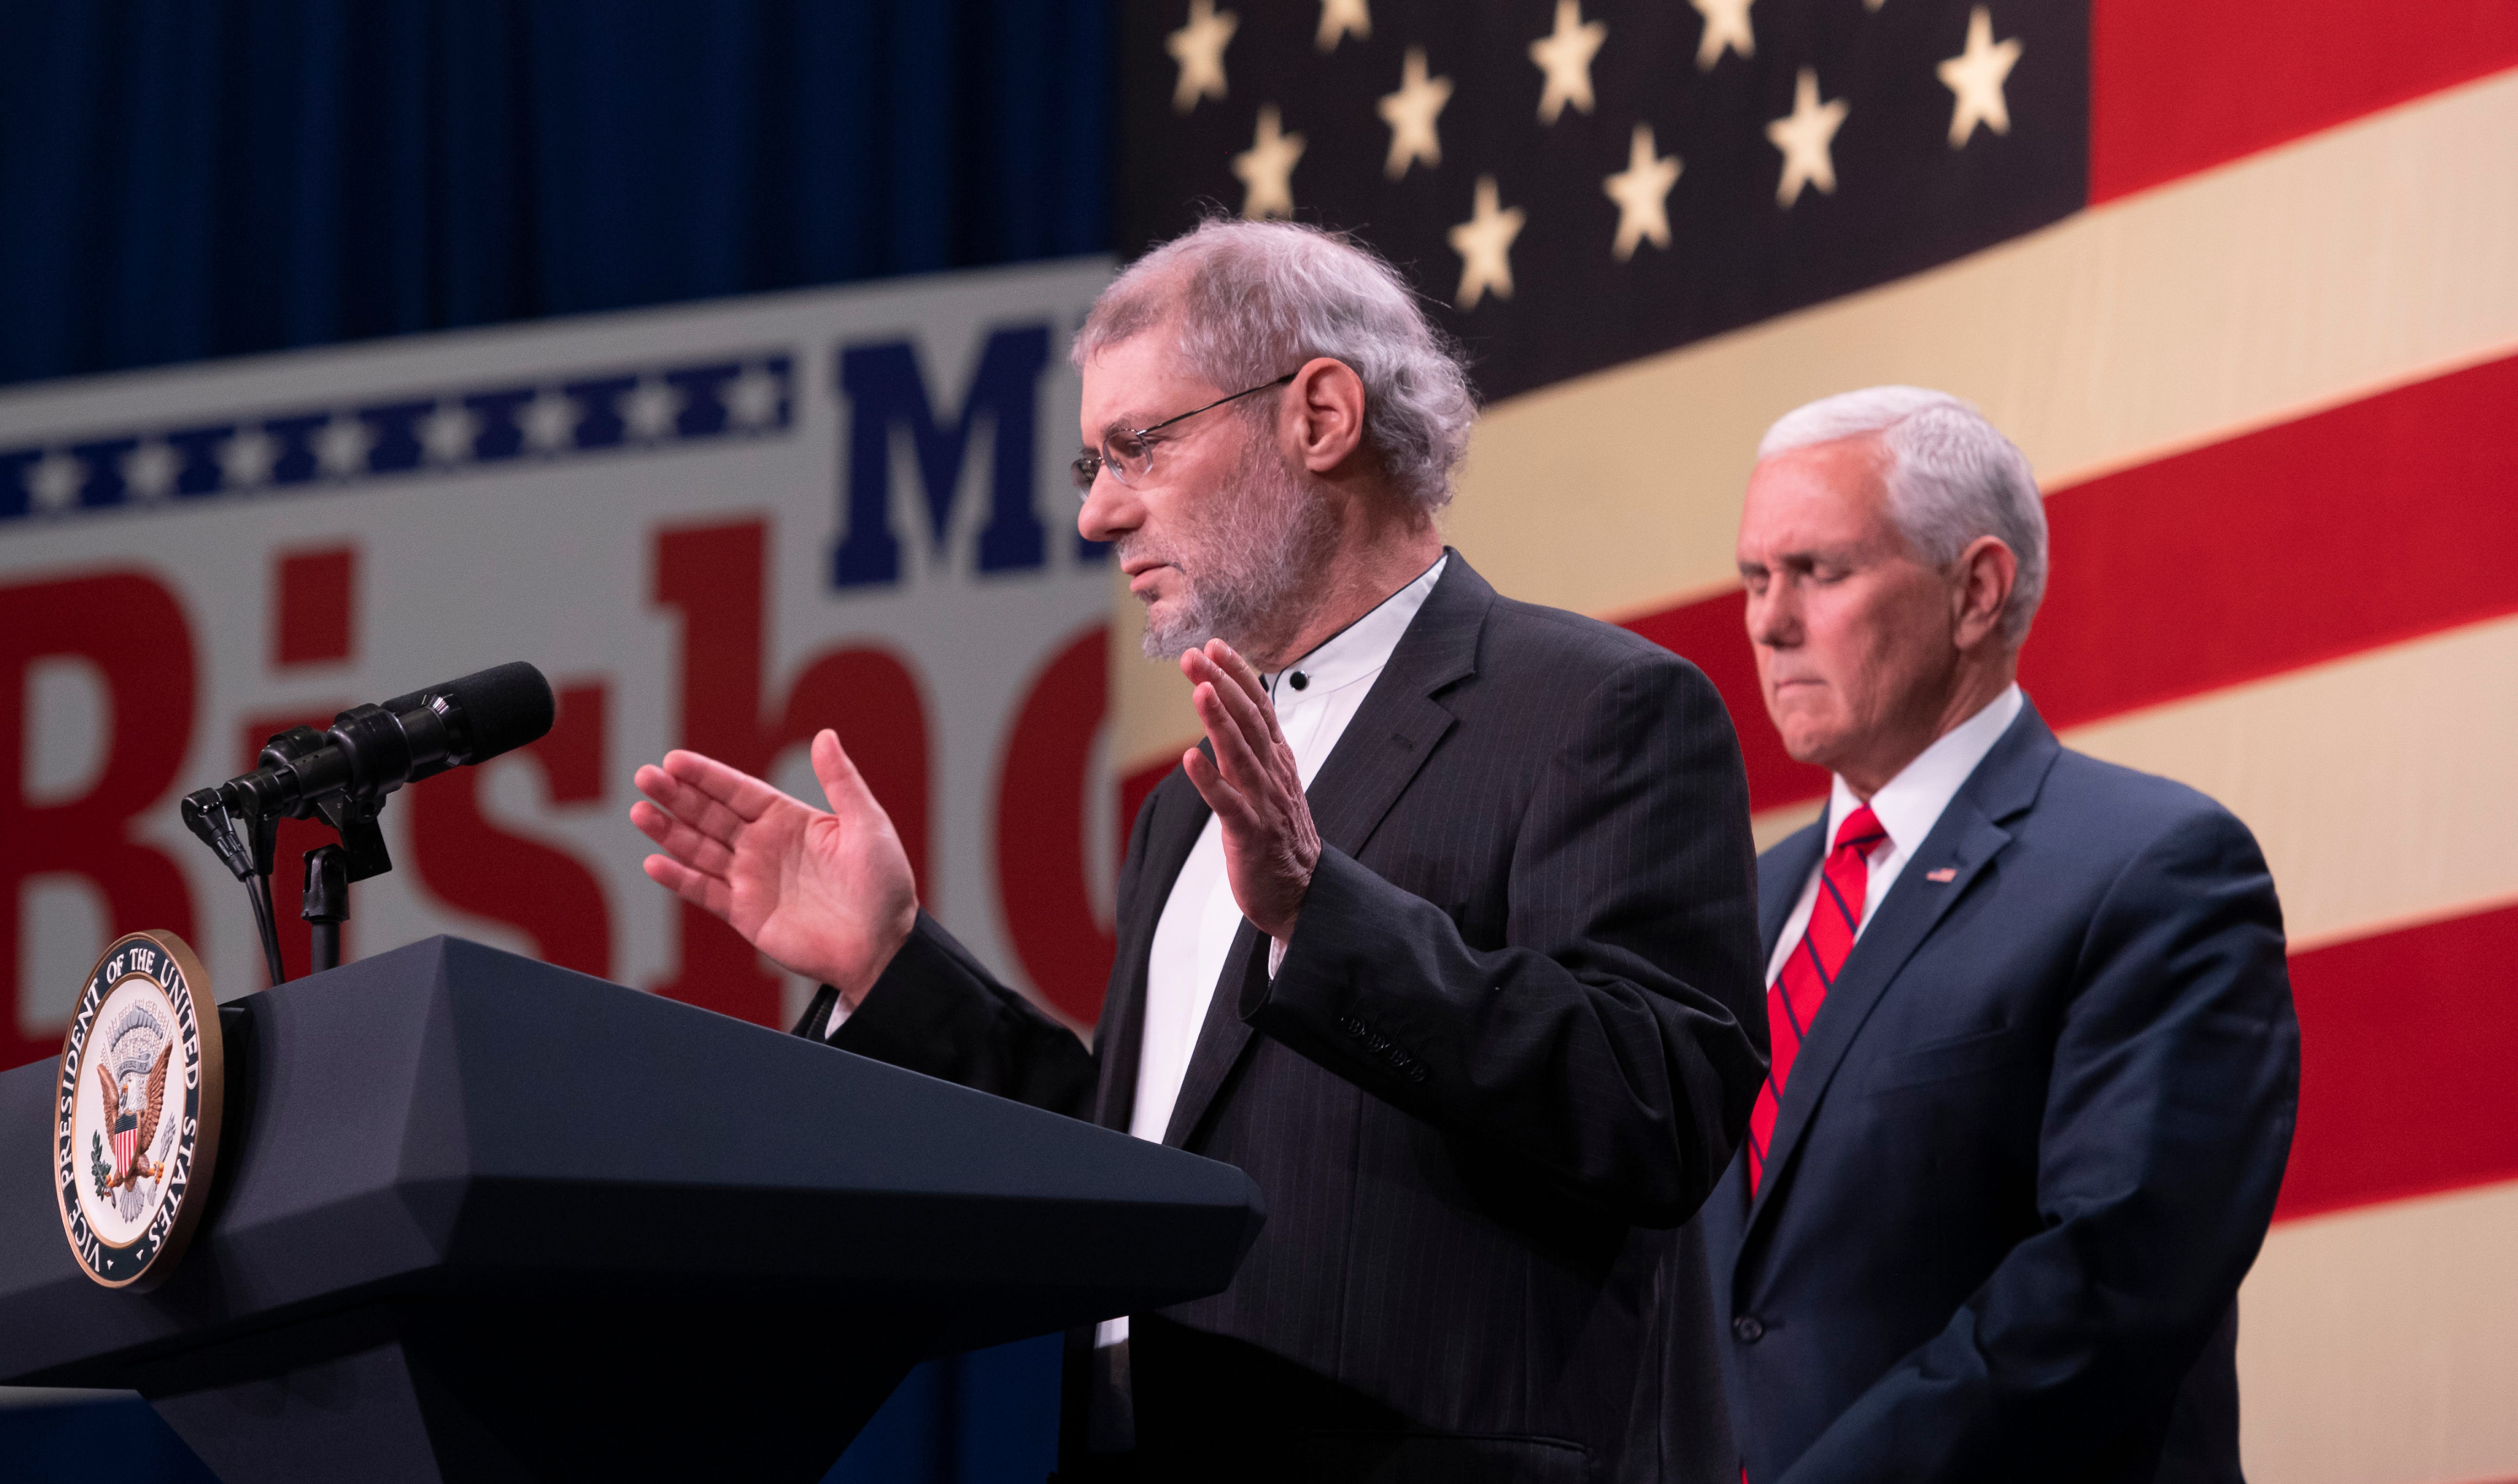 Invited on stage by Vice President Mike Pence, right, Rabbi Loren Jacobs, of congregation Shema Yisrael, says a prayer during a rally featuring GOP political candidates at the Oakland County airport in Waterford, Monday.